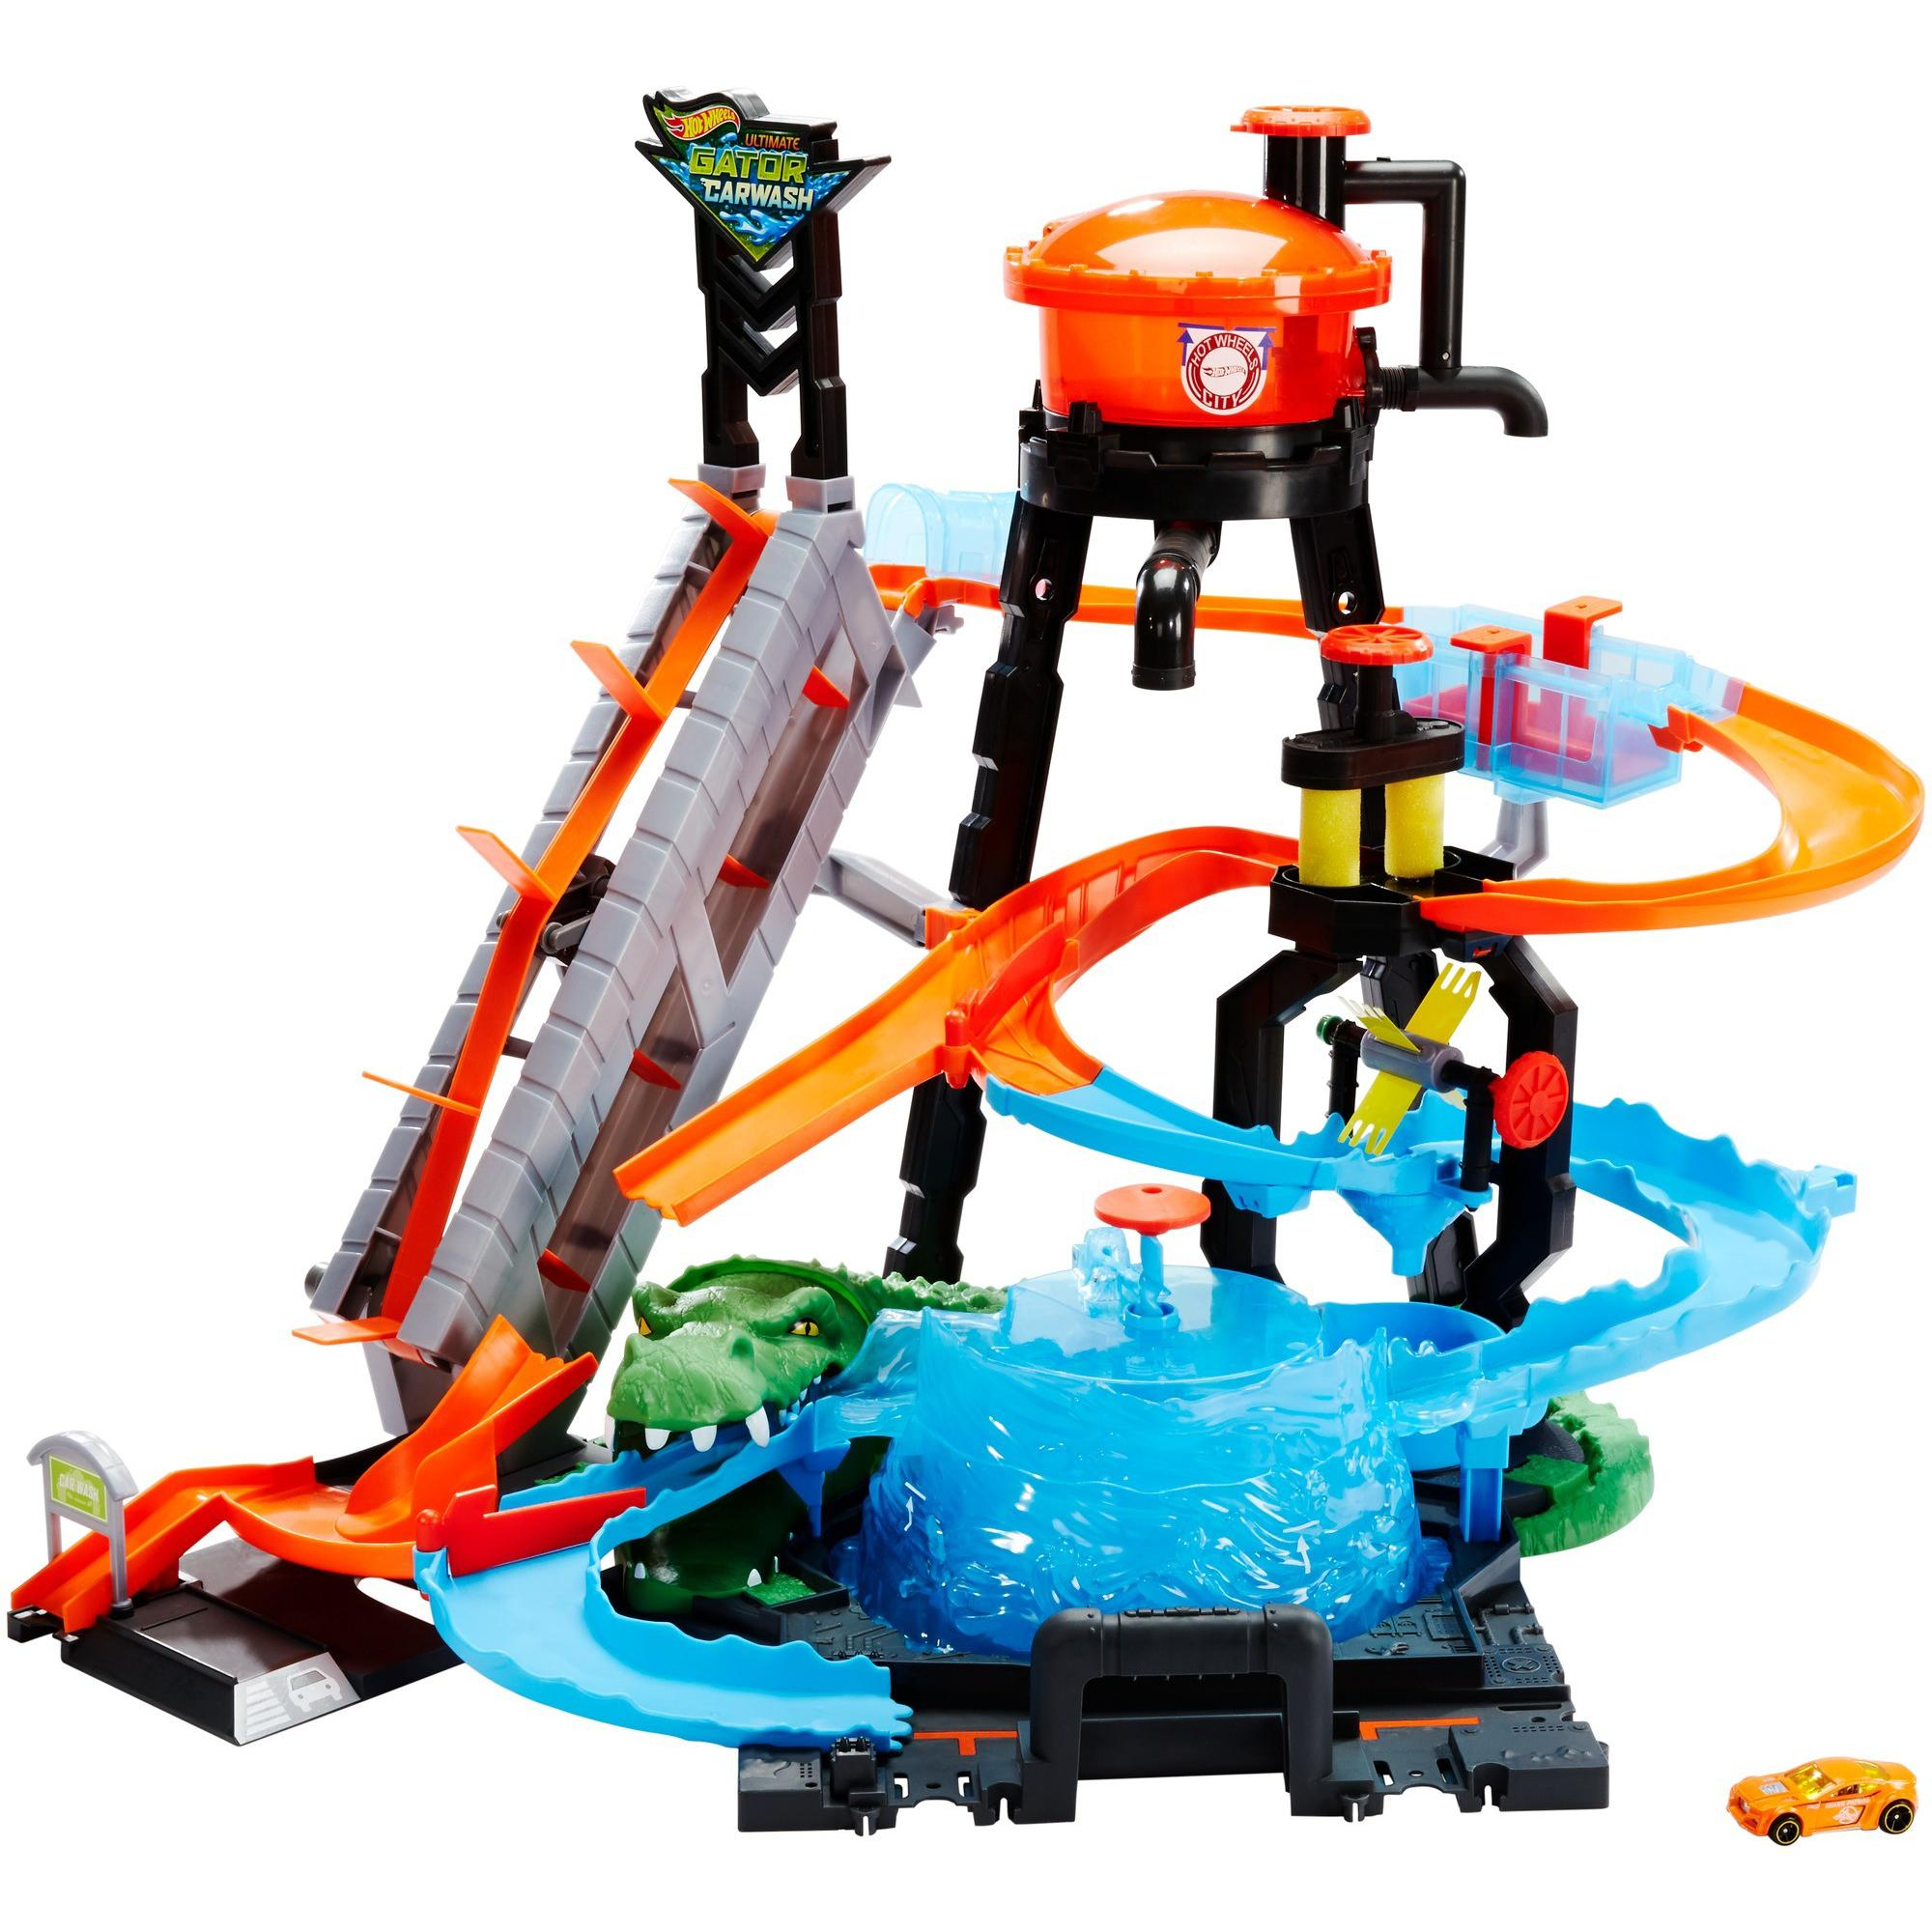 Hot Wheels Ultimate Gator Car Wash Play Set with Color Shifters Car by Mattel